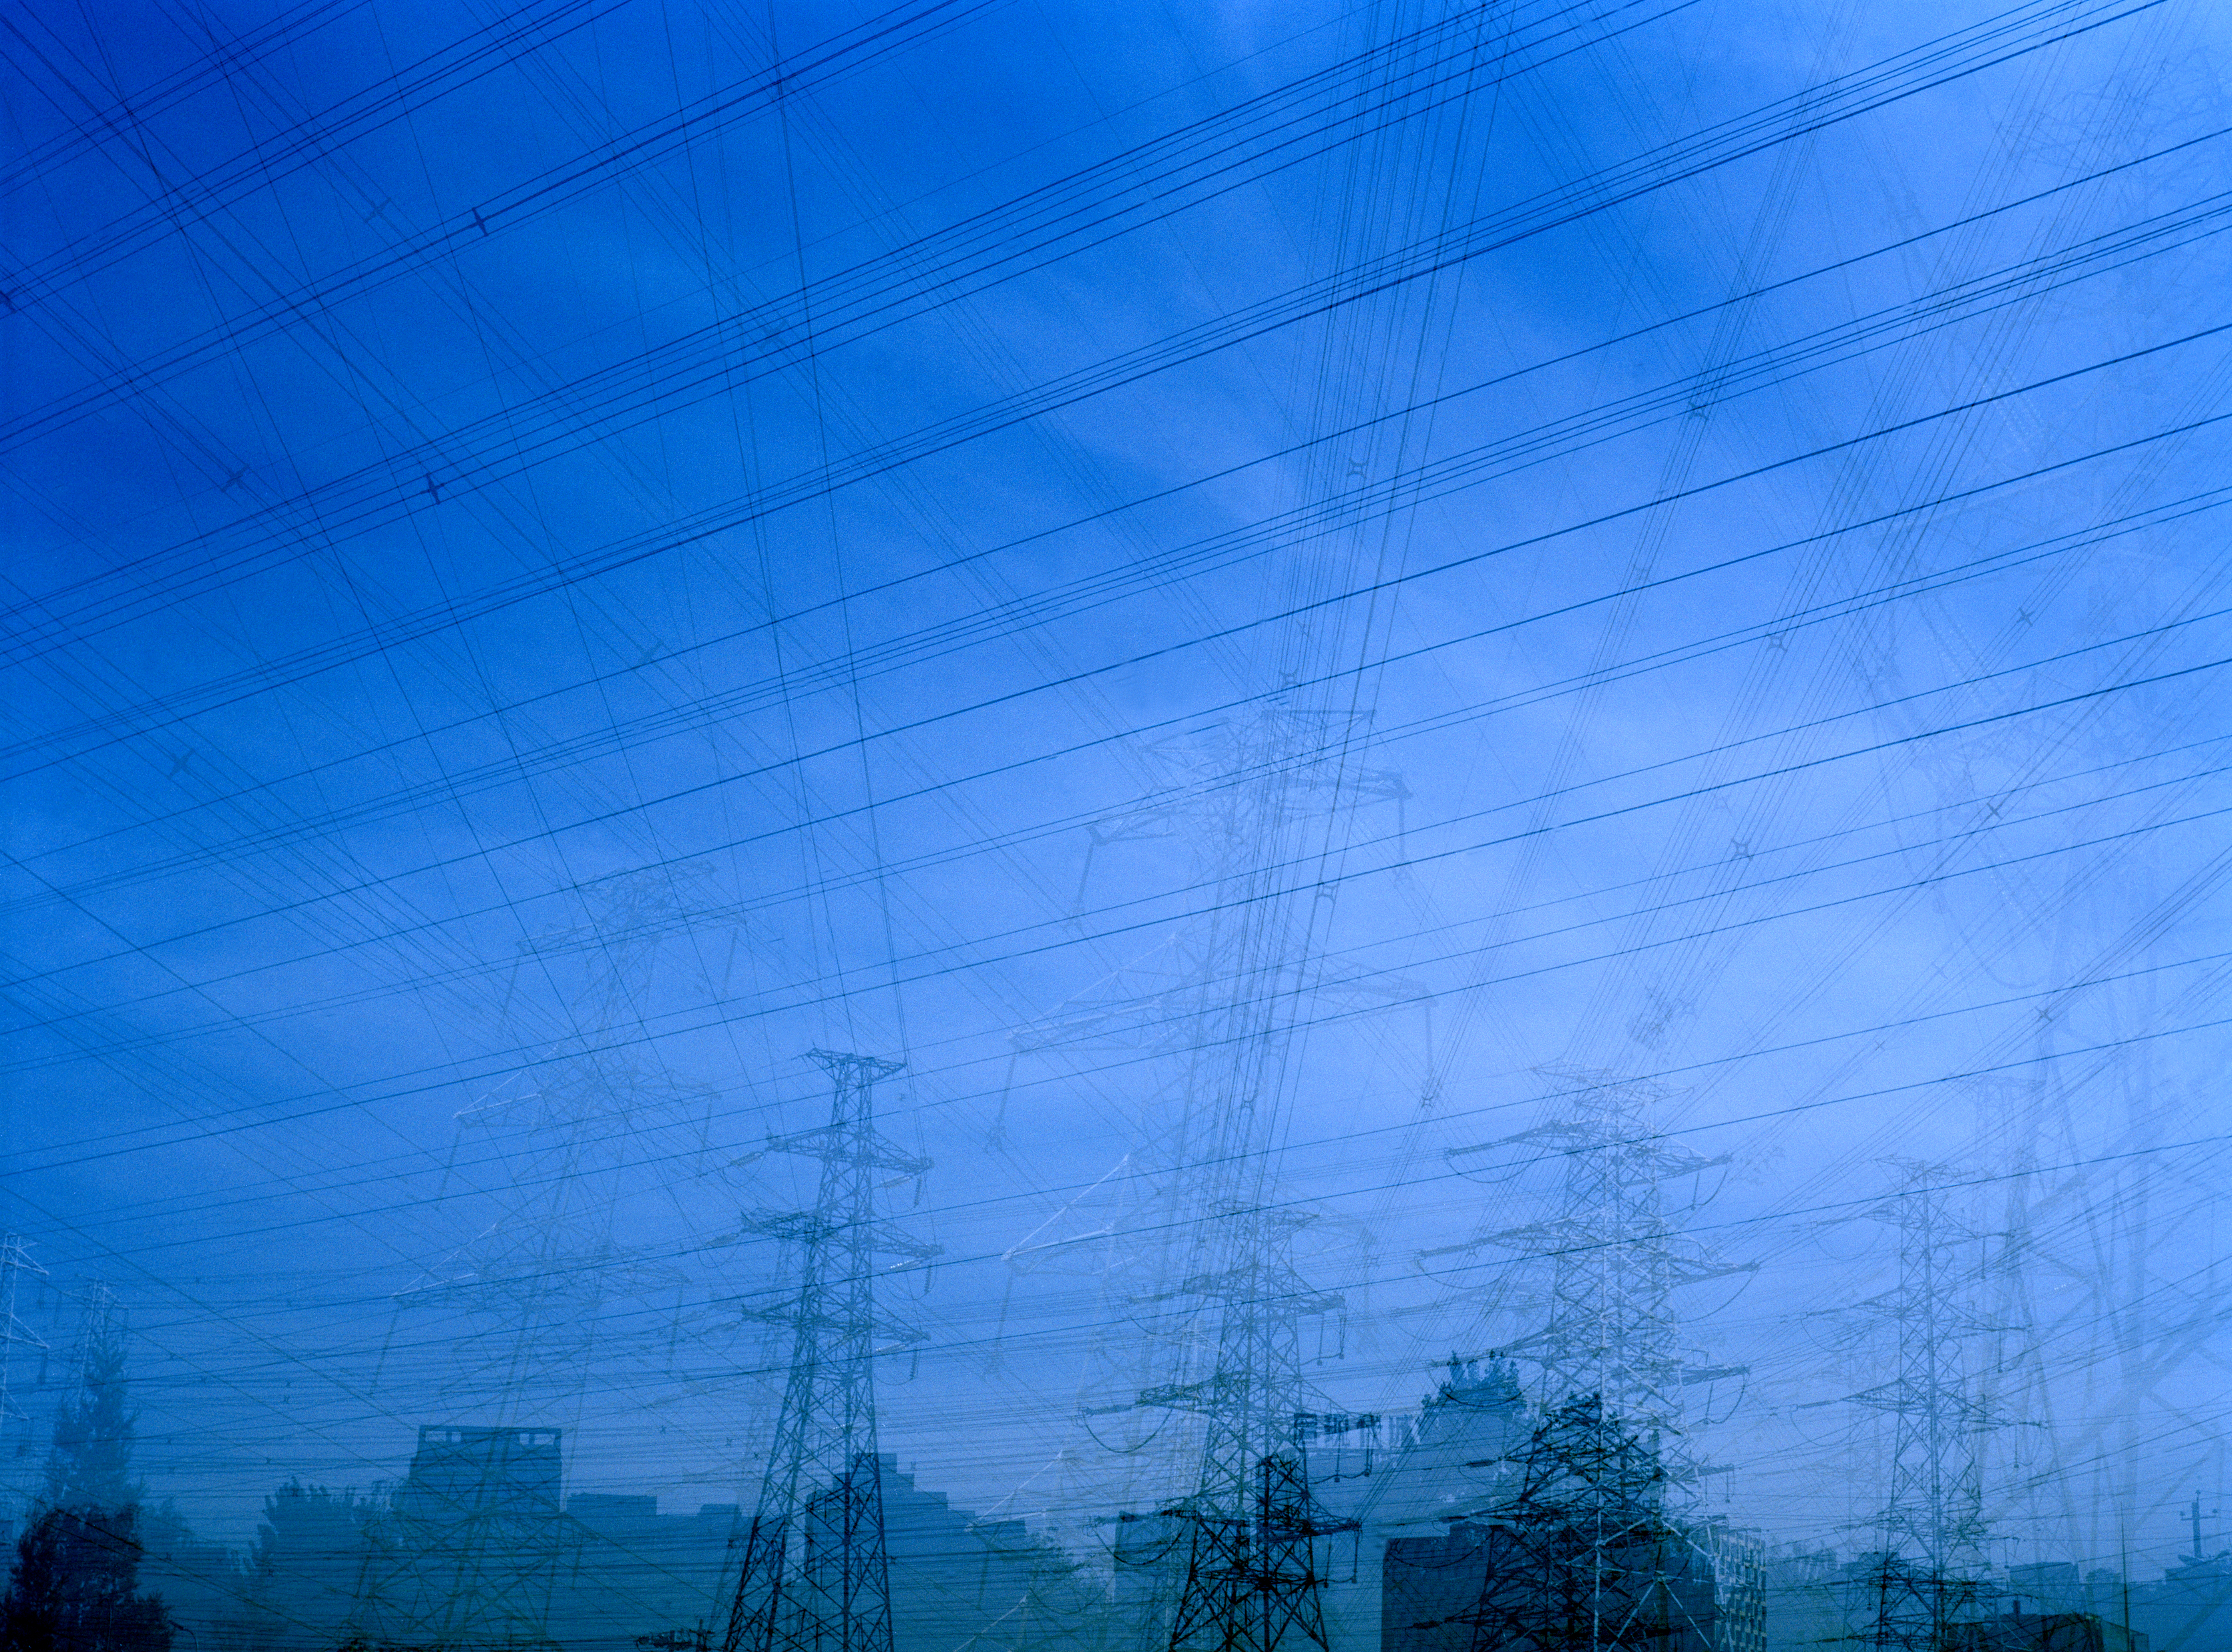 Power Lines and transmission towers can be seen behind a dark, blue sky.